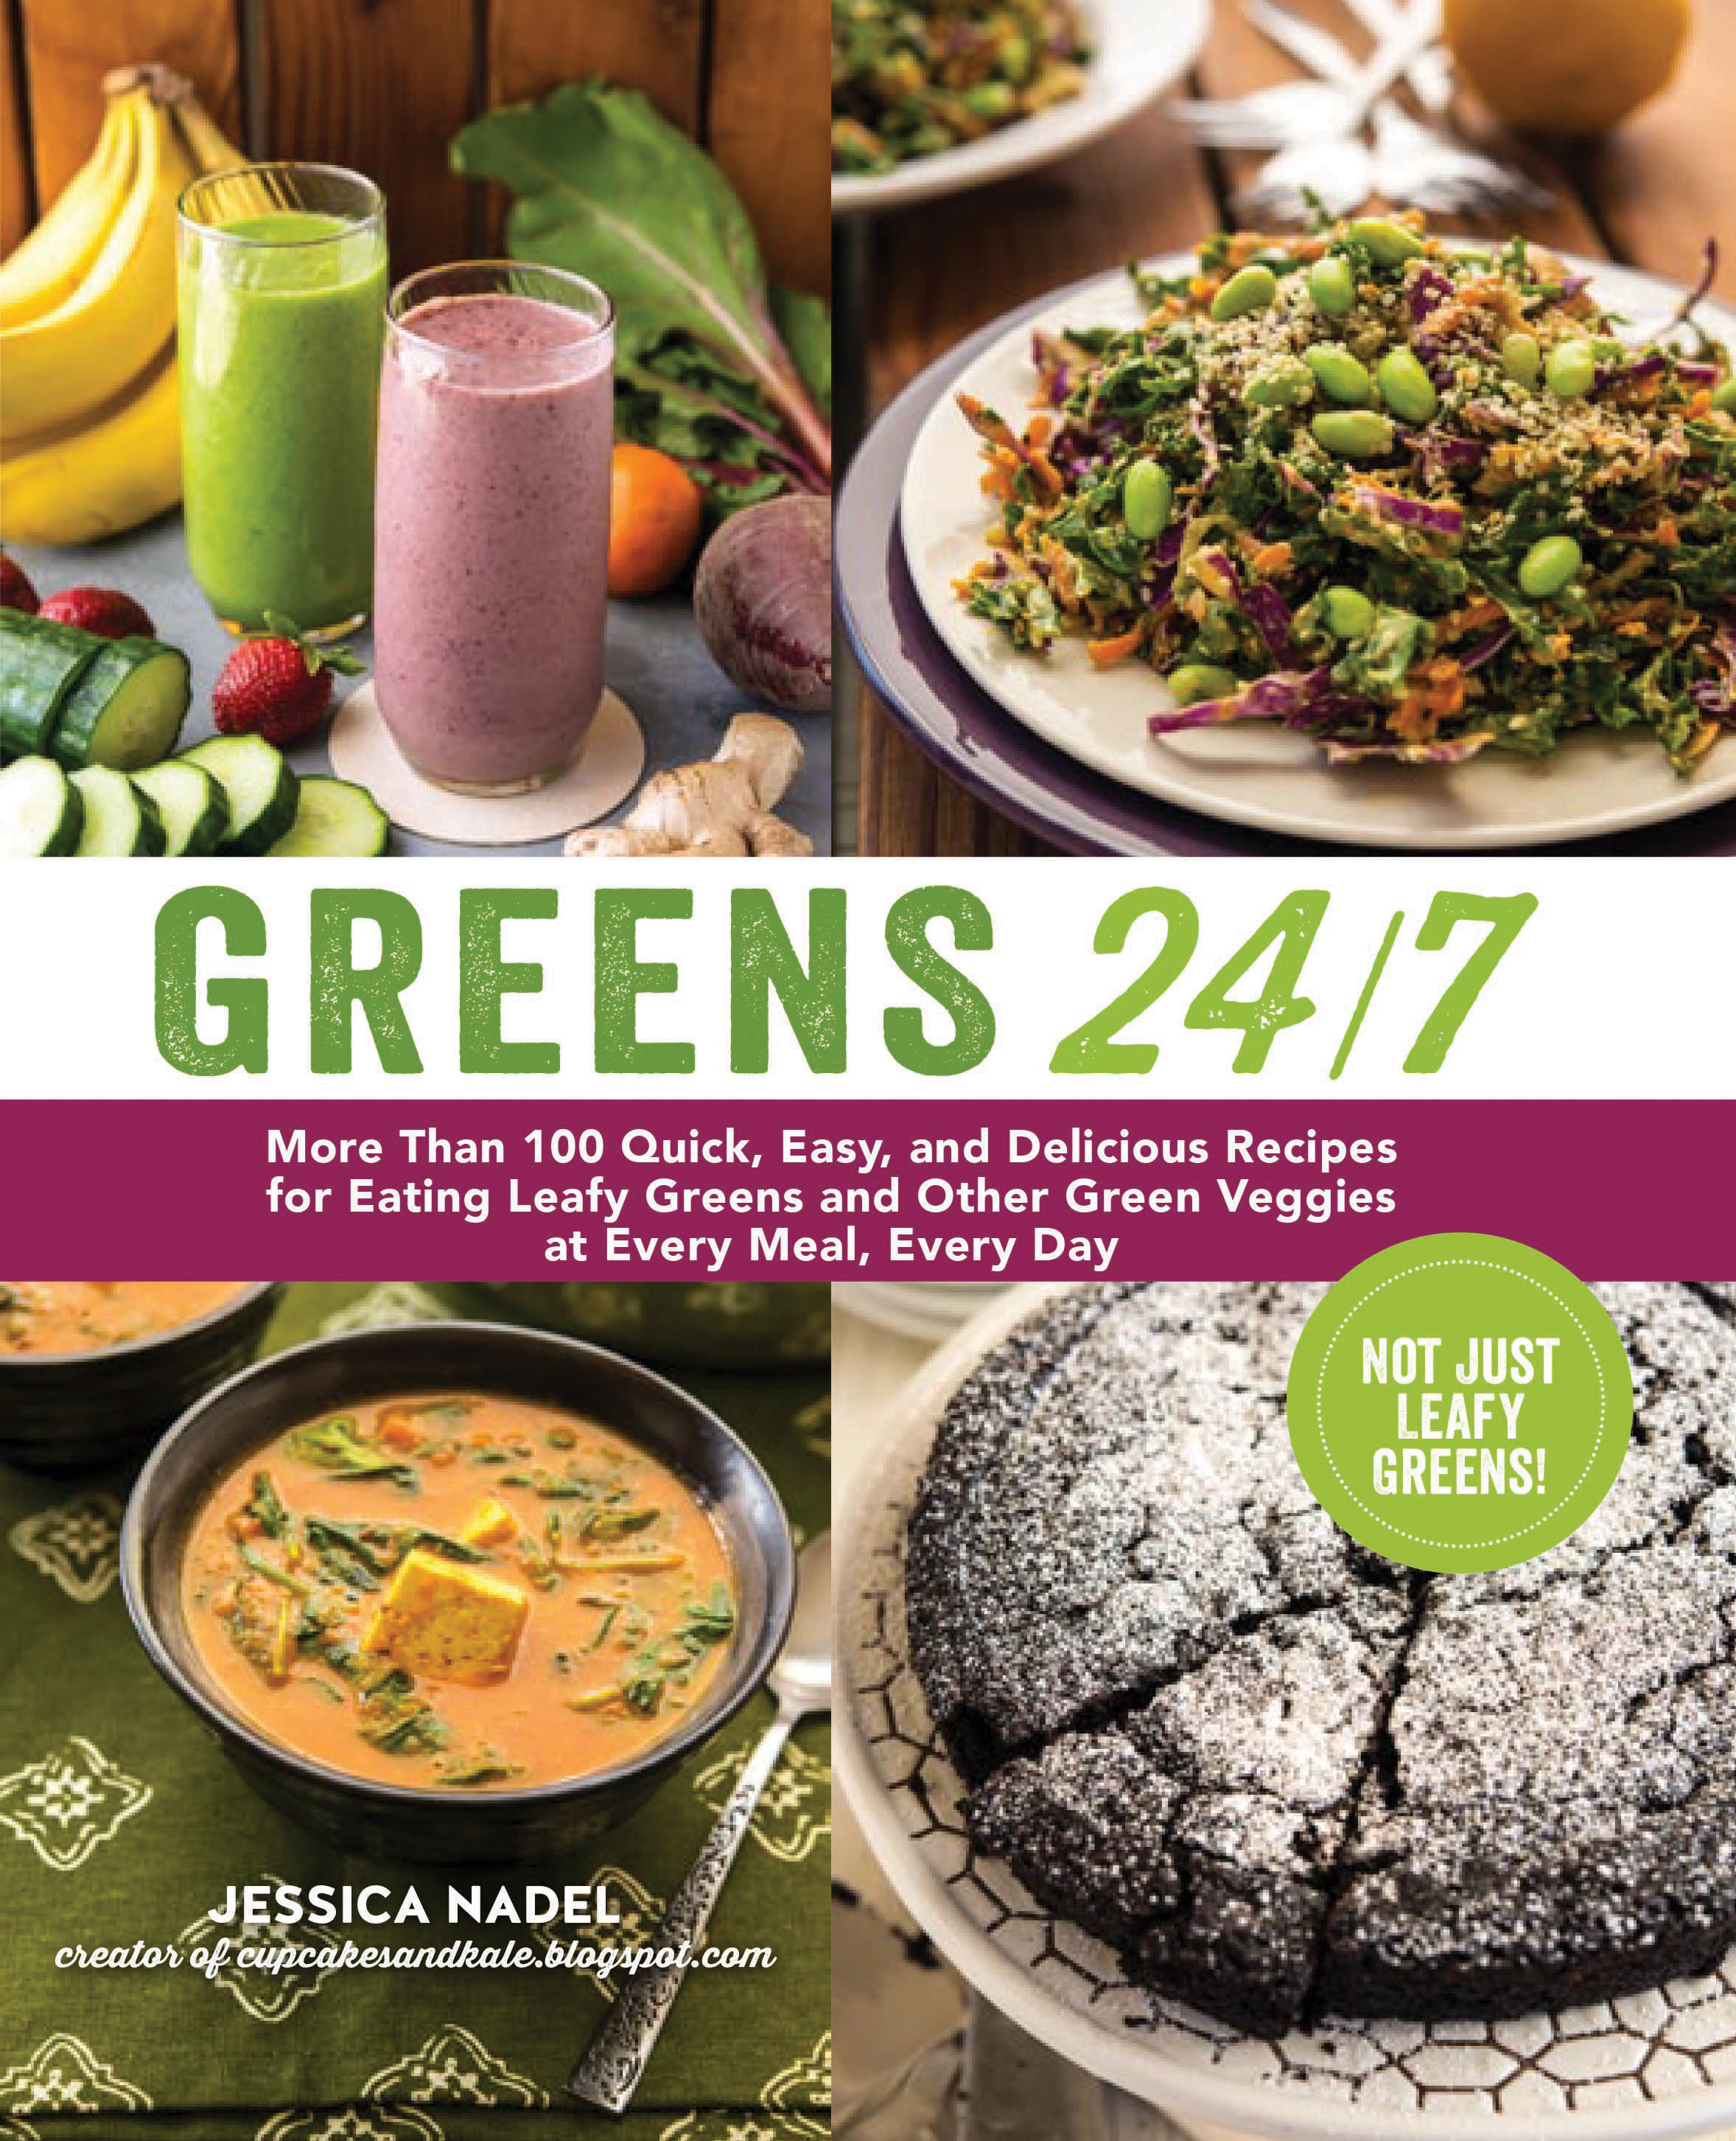 Greens 24/7 More Than 100 Quick, Easy, and Delicious Recipes for Eating Leafy Greens and Other Green Vegetables at Every Meal, Every Day